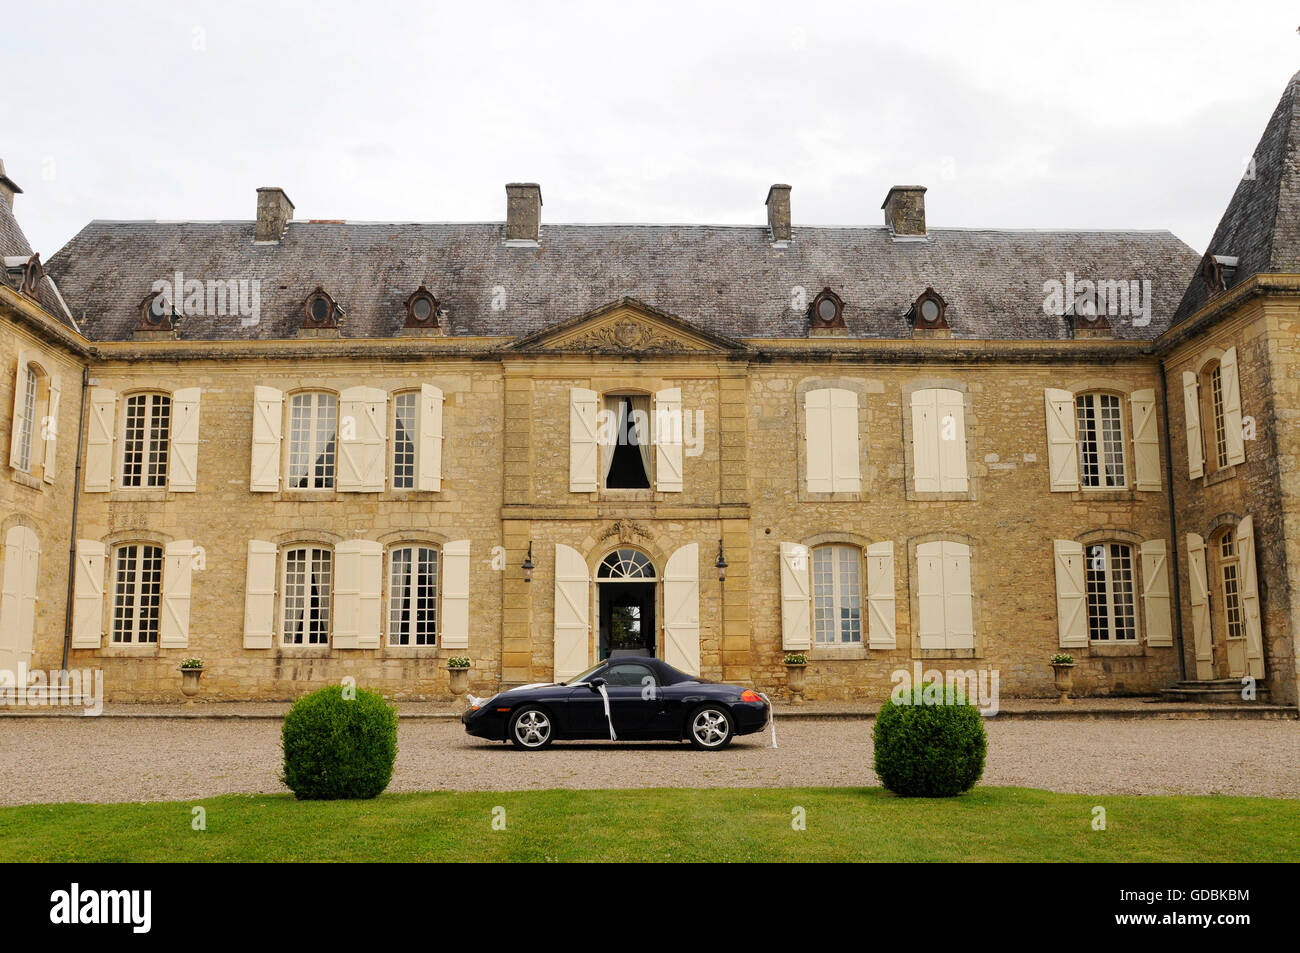 Chateau in the Dordogne - Stock Image